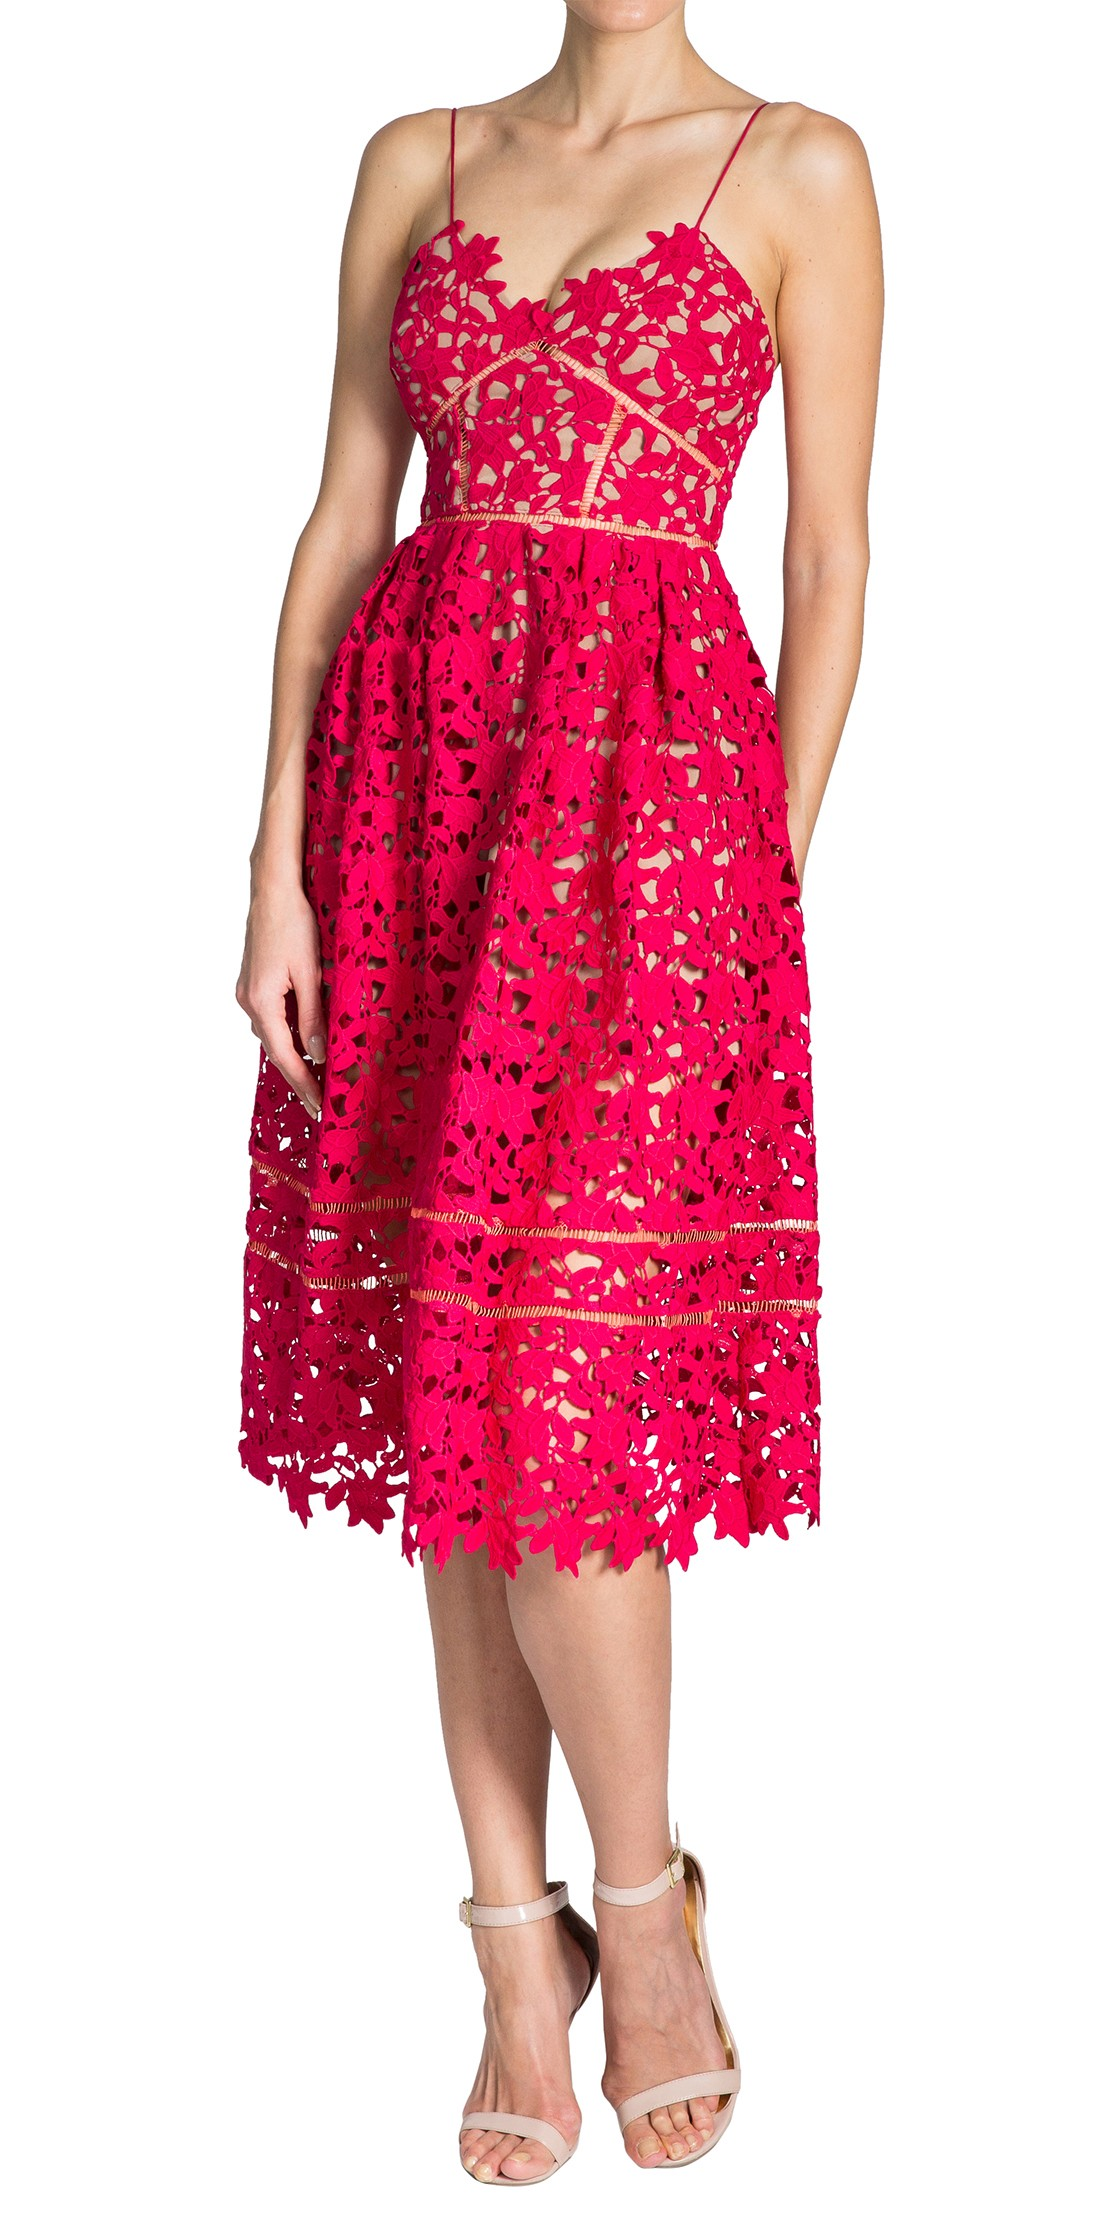 fd0dd2e47d8e Self Portrait - lace midi dress | Cocktail Dresses Rental | Dubai ...